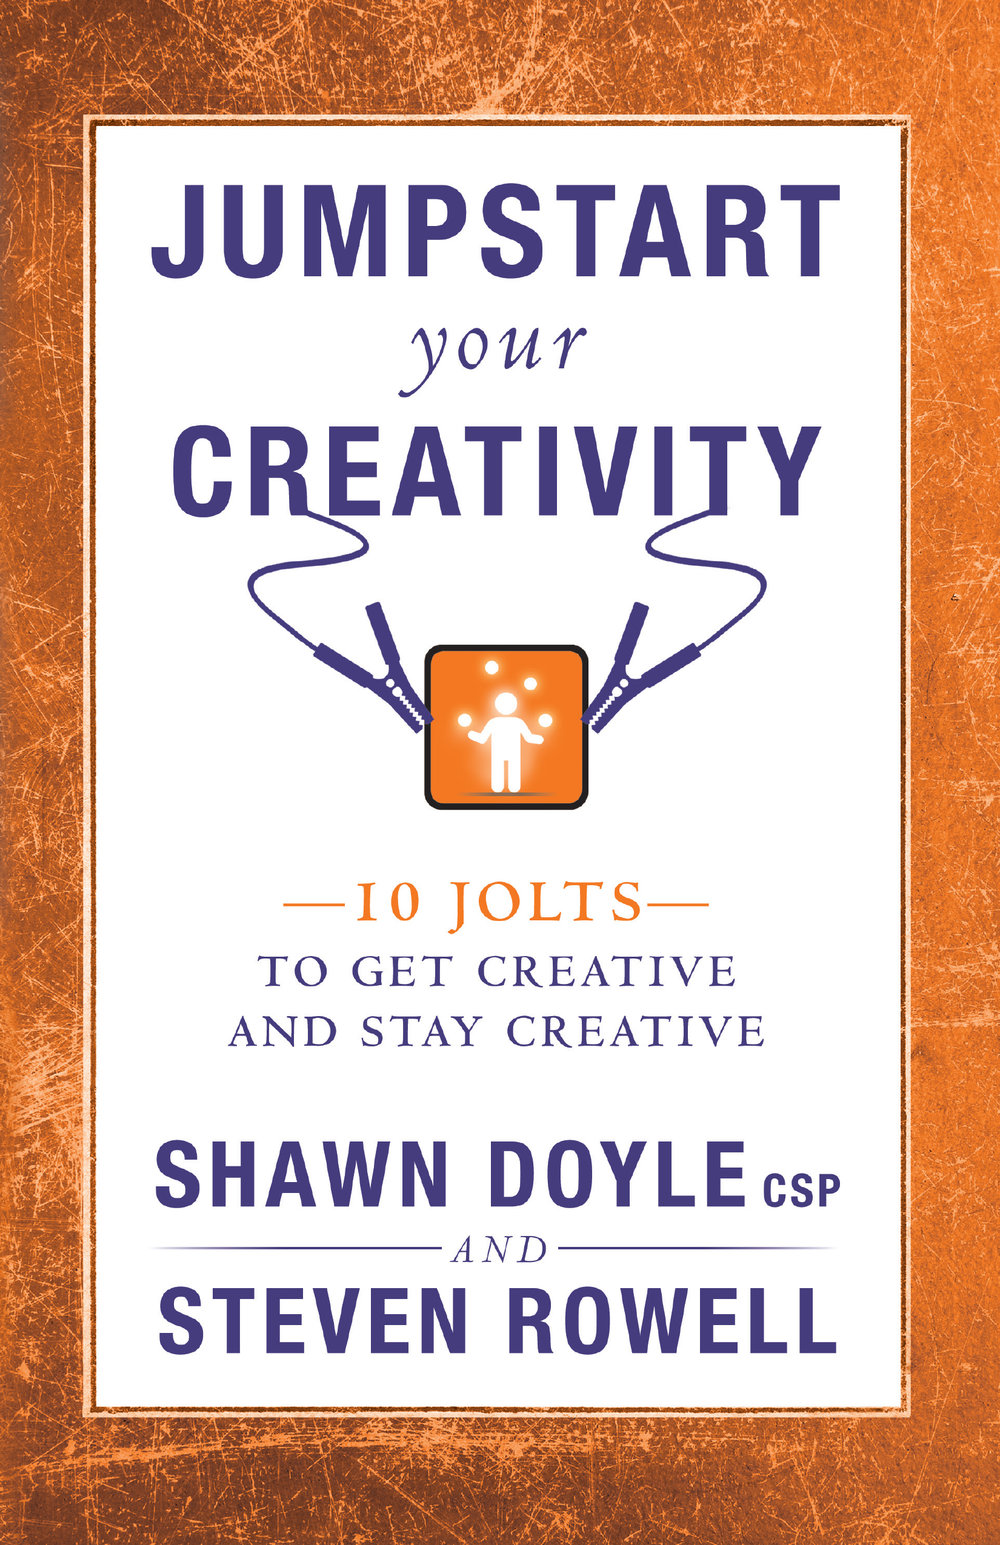 Jumpstart Your Creativity - Shawn Doyle CSP & Steven Rowell